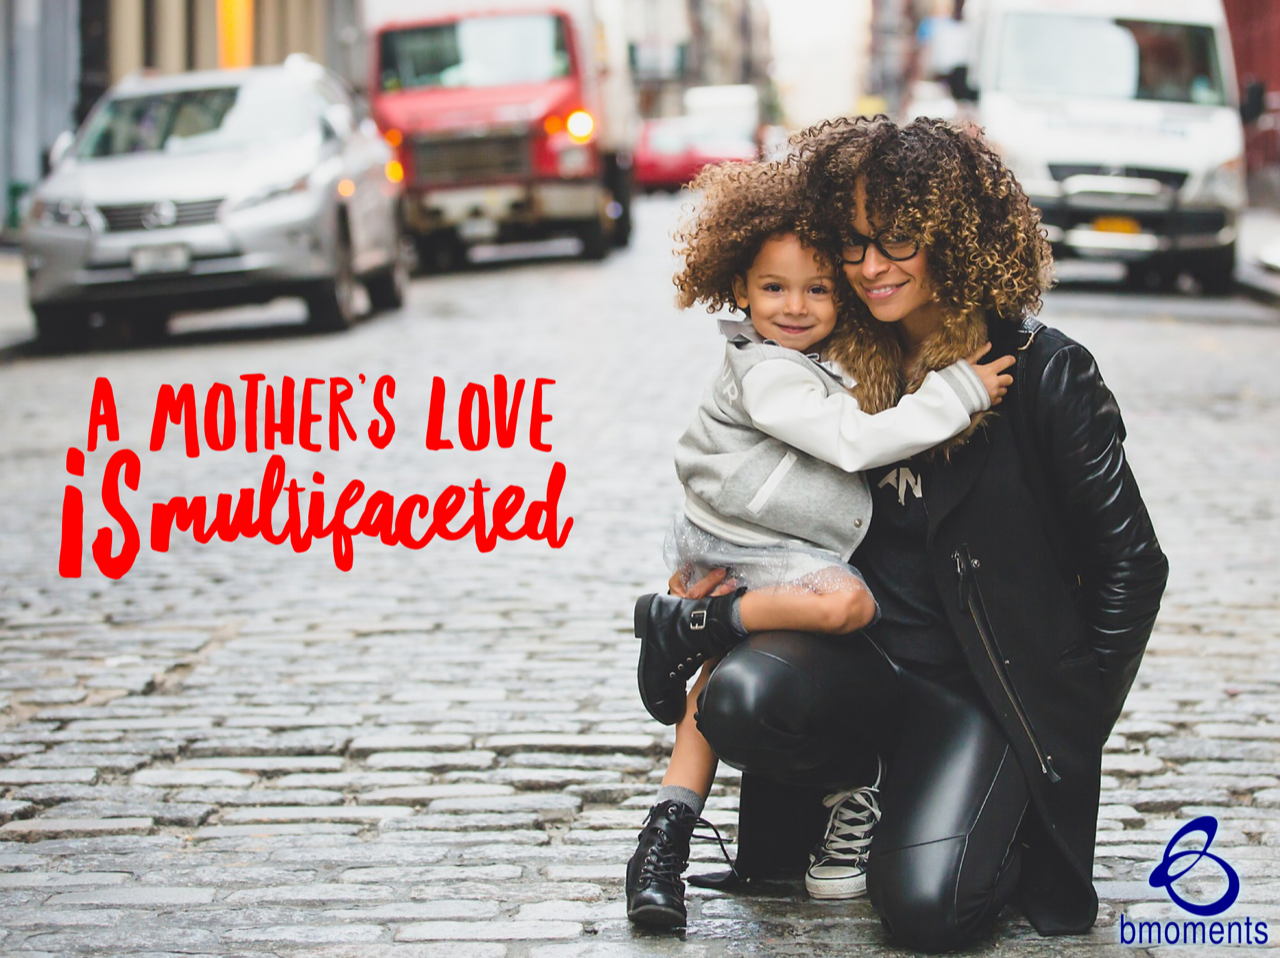 Celebrate a Mother's Multi-Faceted Love